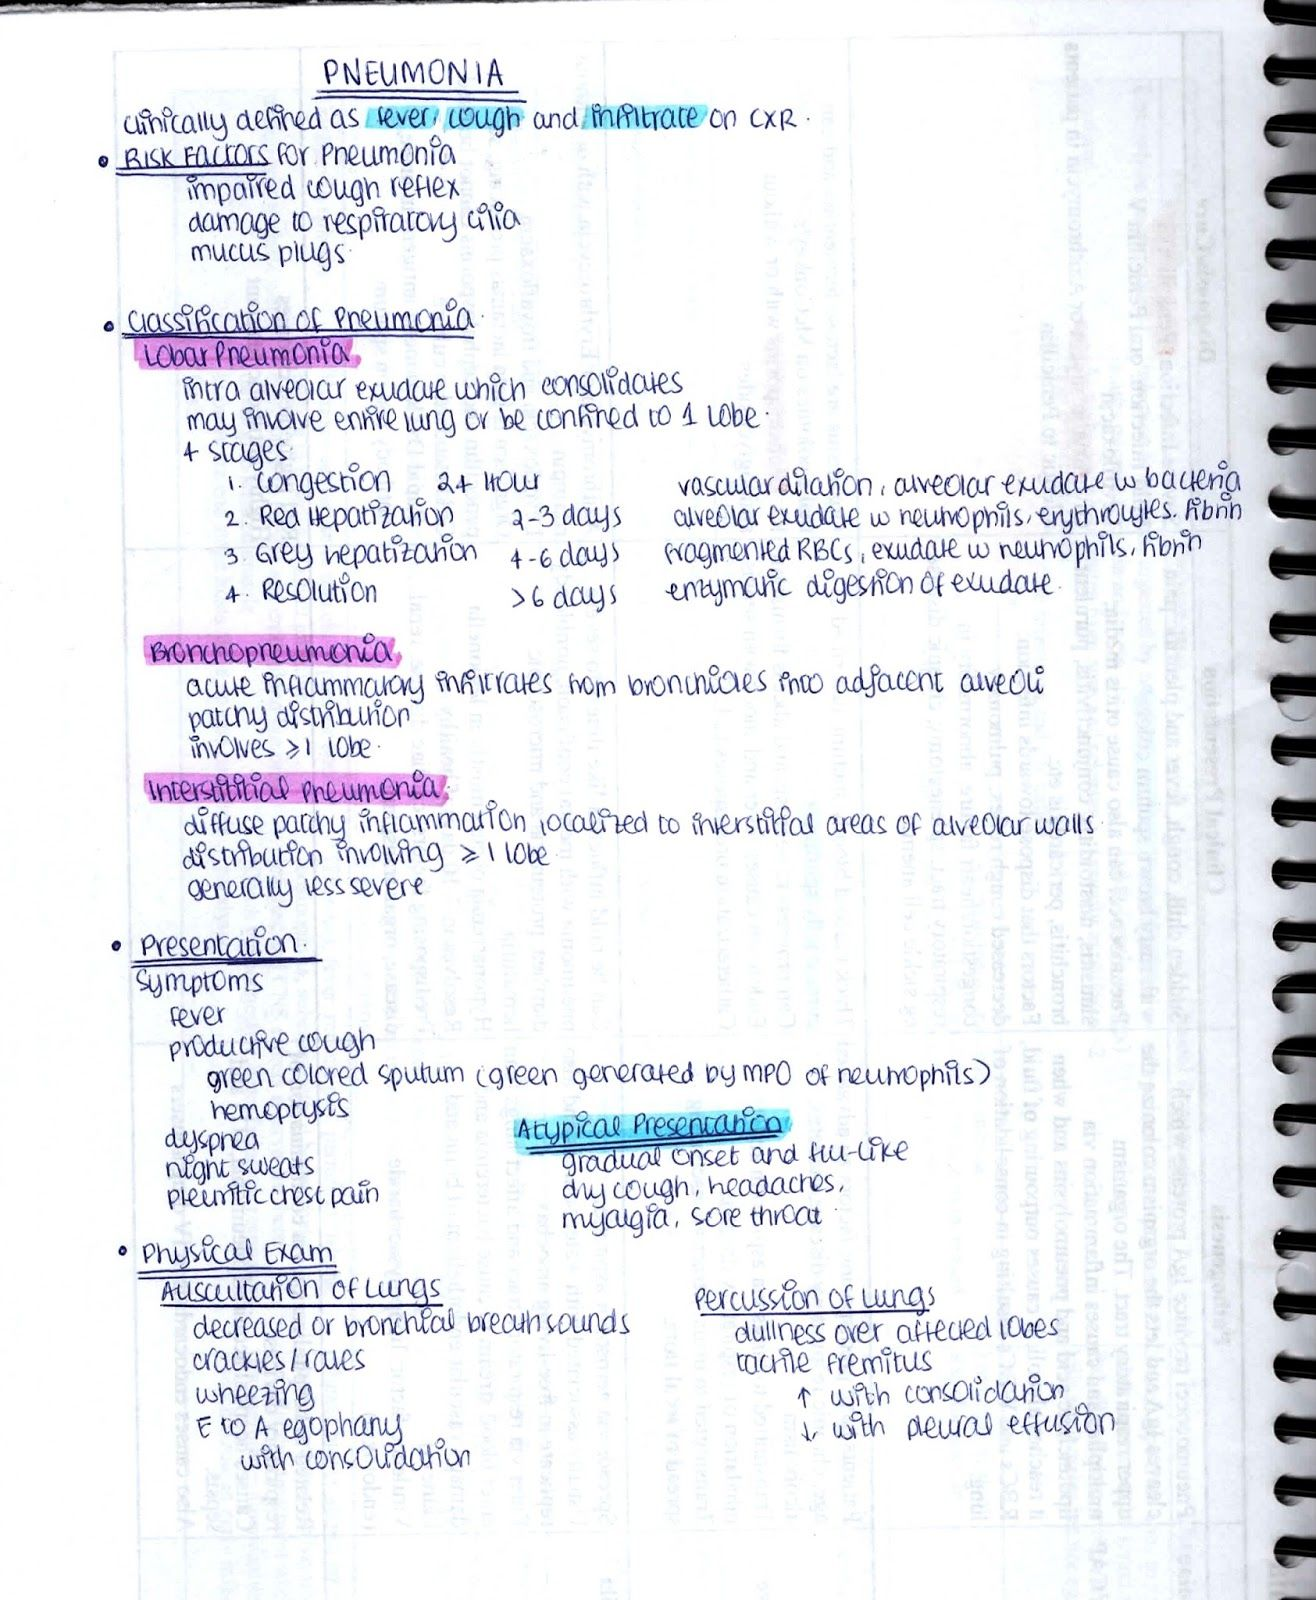 The Complete Guide on How To Study Microbiology in Med School